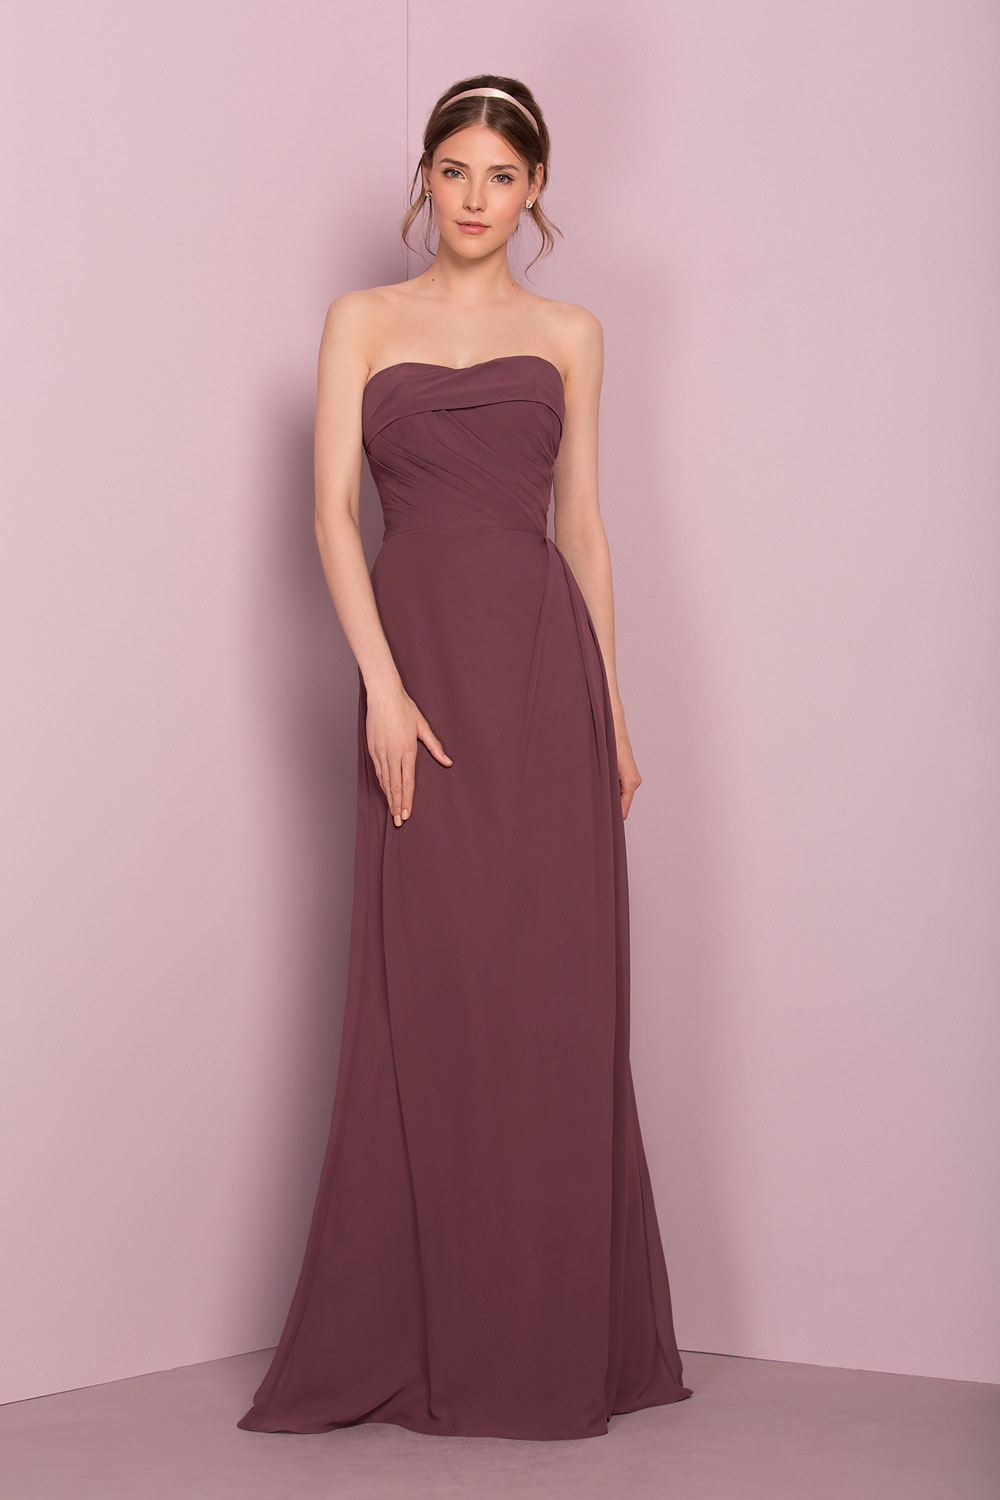 STYLE 18604 : CHIFFON GOWN